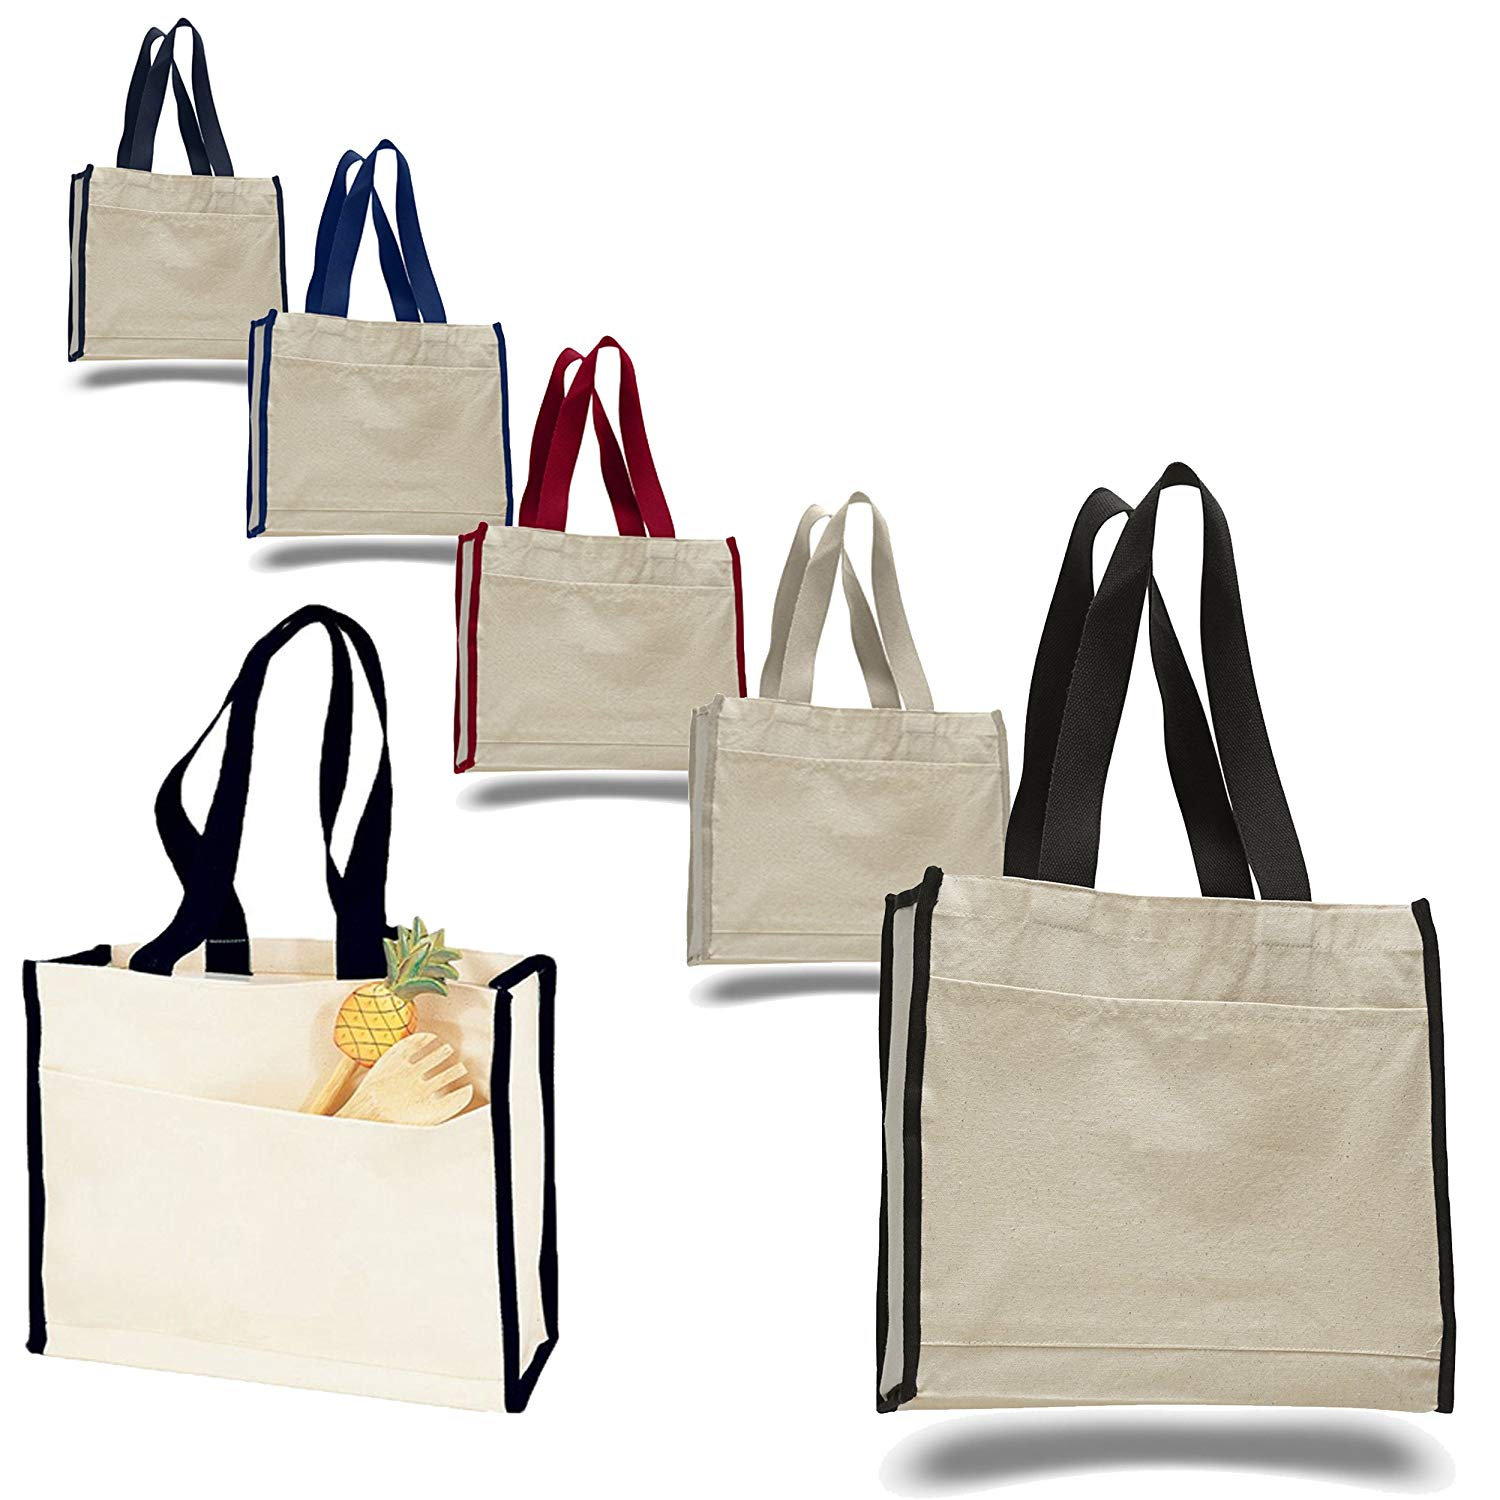 f981369b79 Get Quotations · Heavy Canvas Reusable Tote Bags with Front Pocket